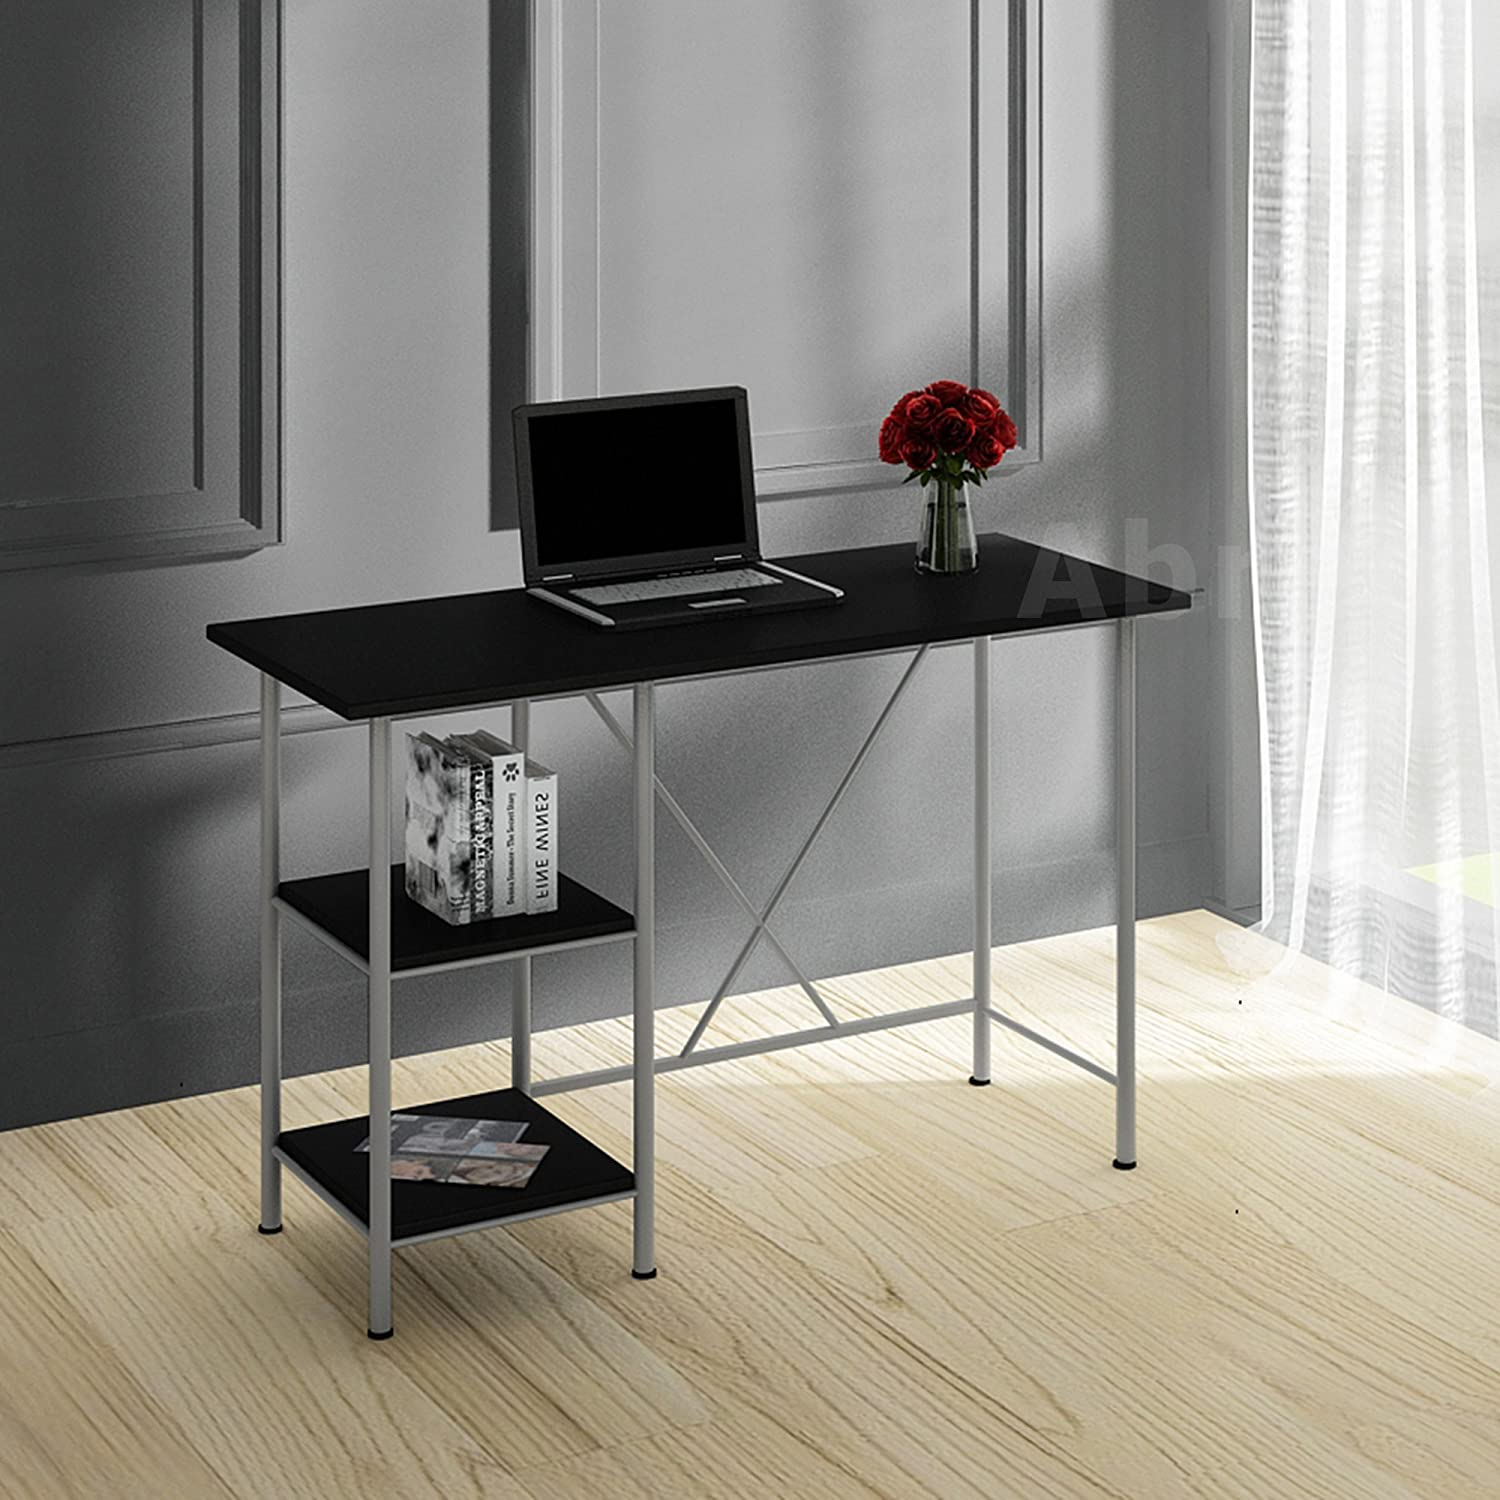 artek skandium kaari desk shelf erb hdfs with